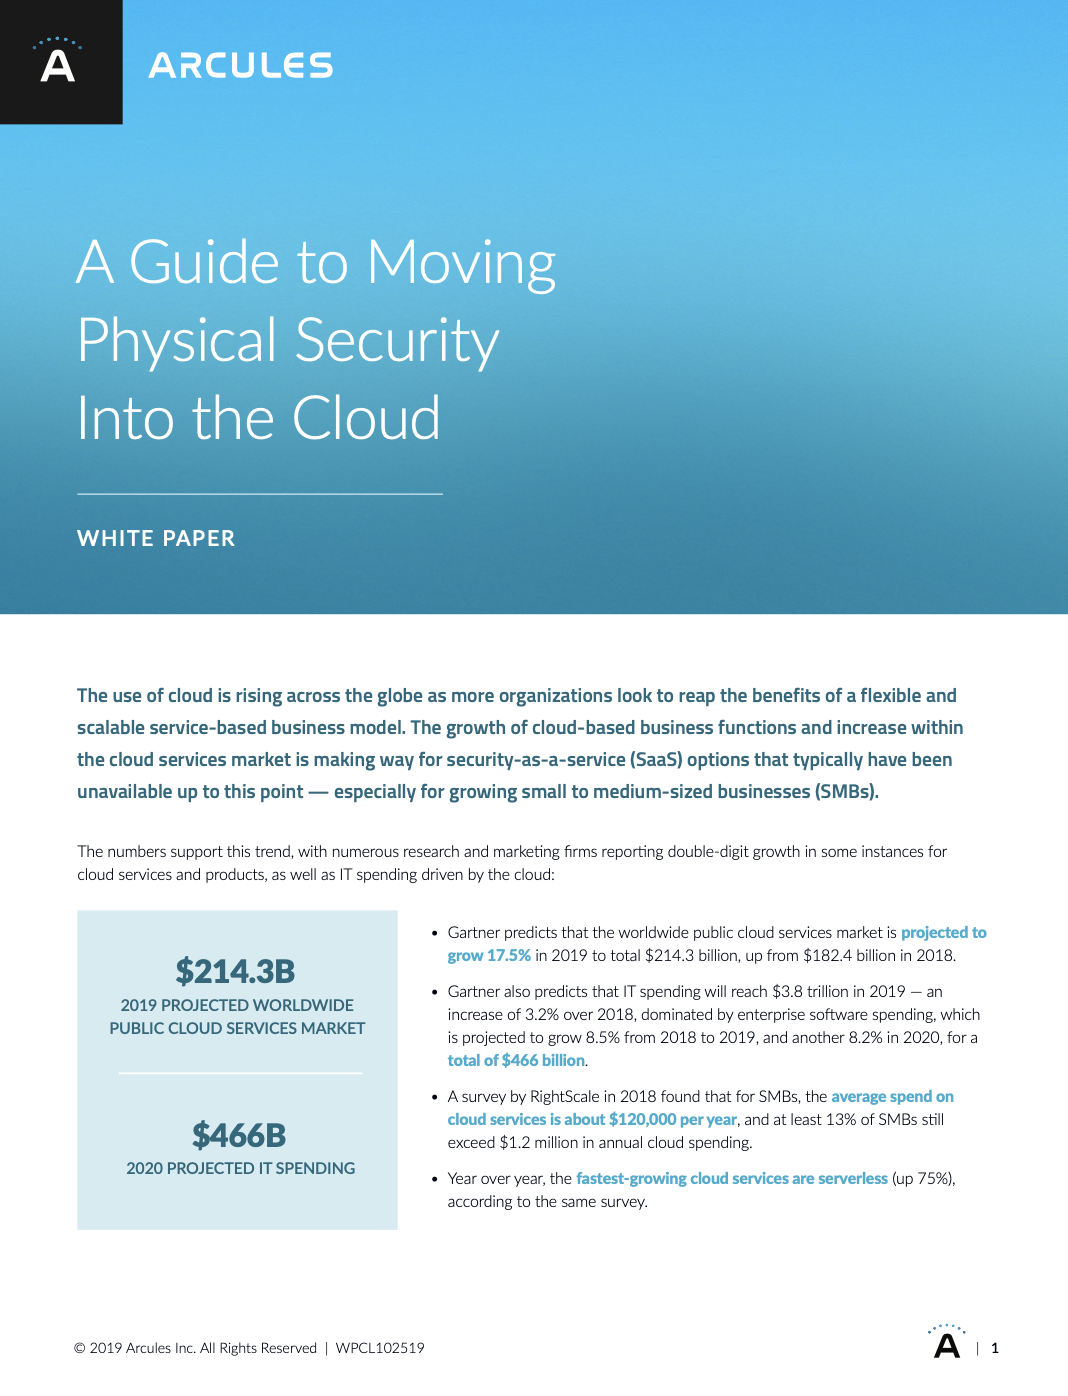 A Guide to Moving Physical Security Into the Cloud